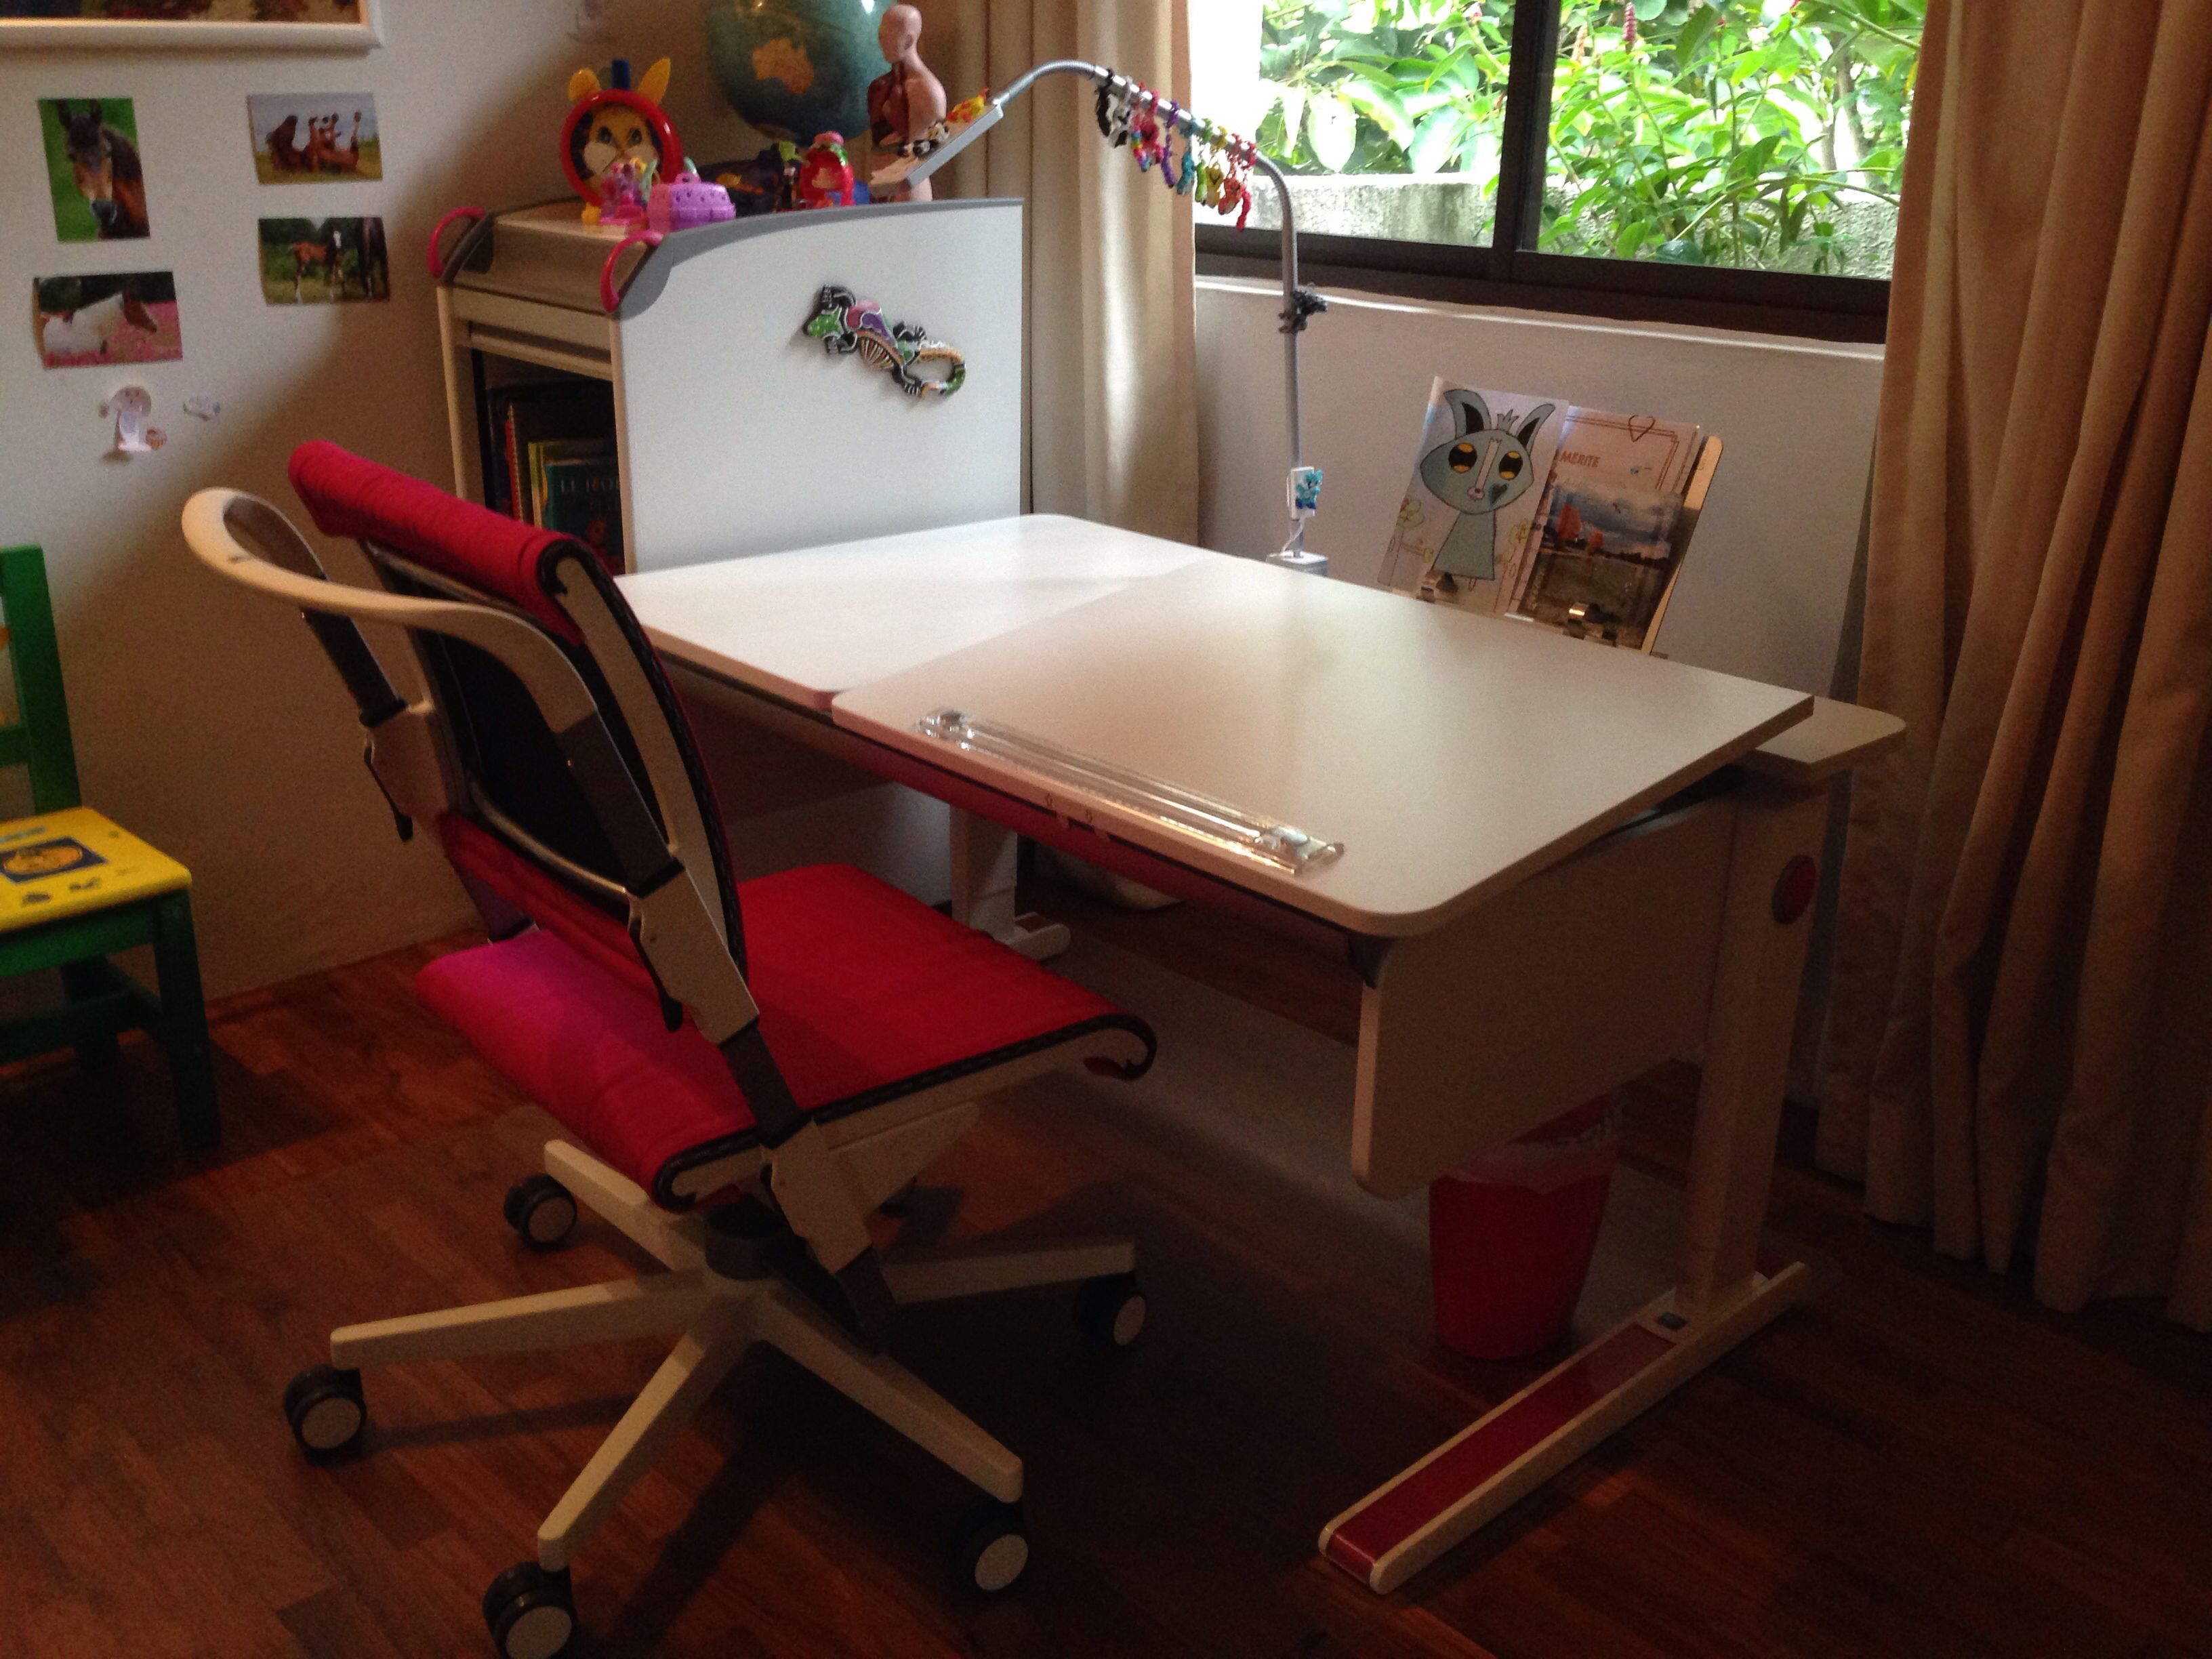 Moll Champion Desk with Scooter Chair Balmoral Road kidsdesks